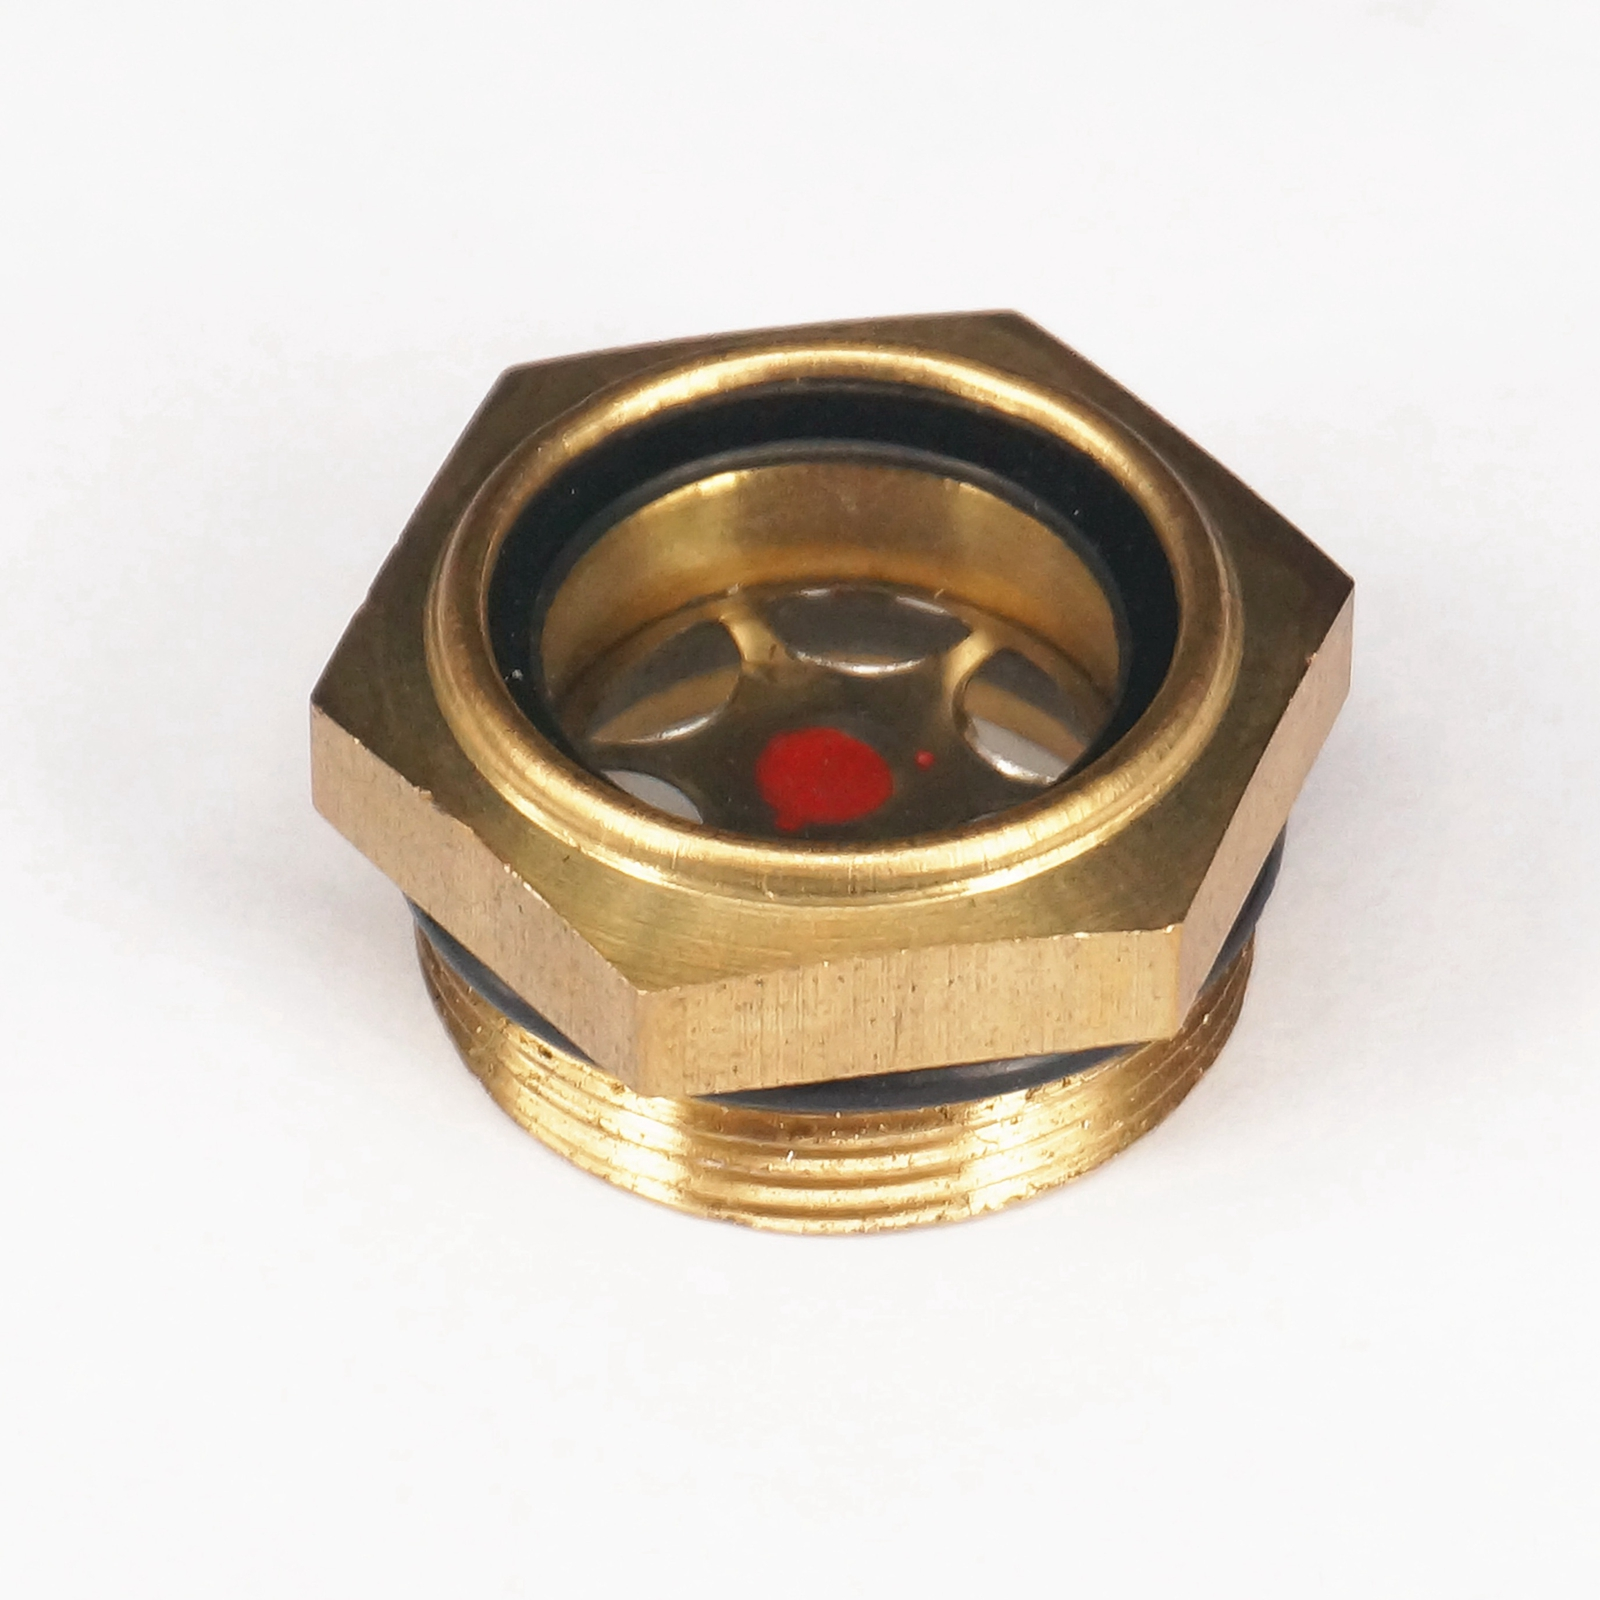 M30x1.5mm Metric Male Brass Oil Level Sight Glass Window Hex Head For Air Compressor Gearbox